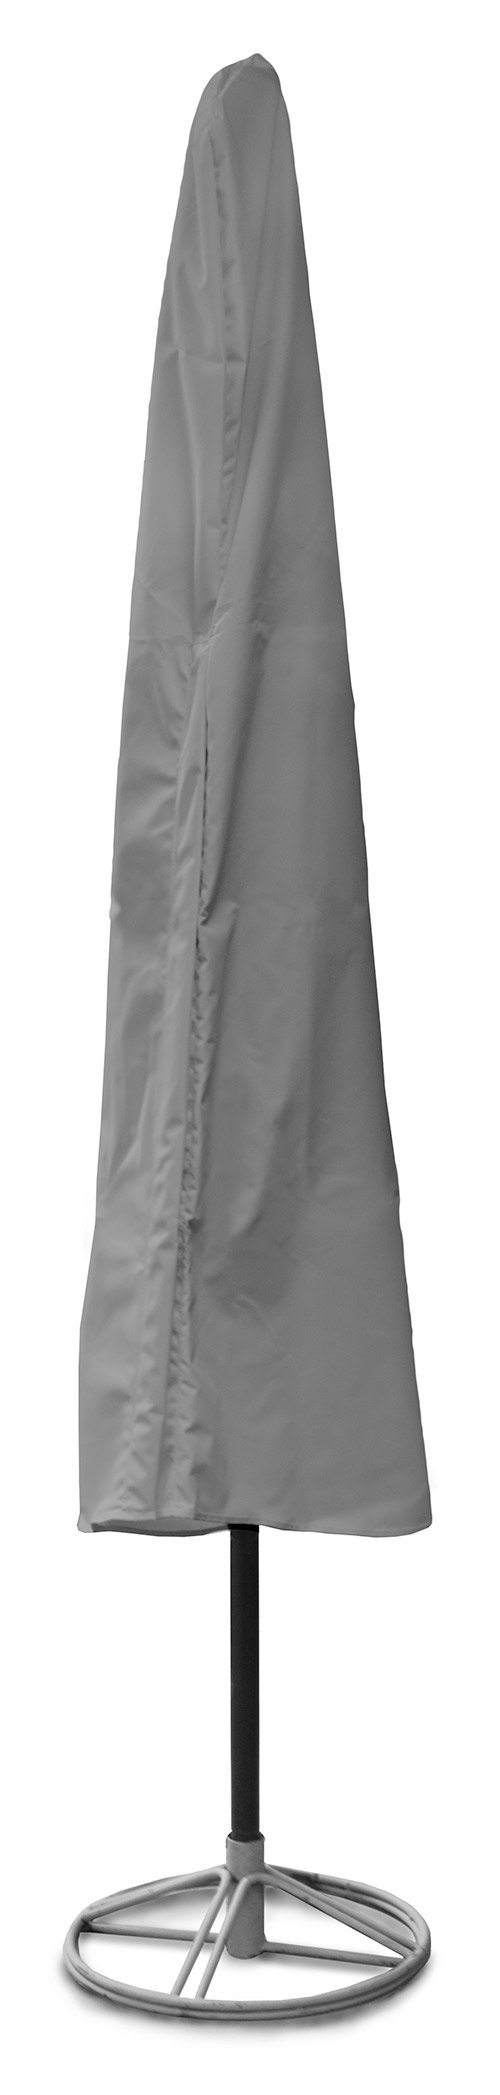 KoverRoos Weathermax 84282 11-Feet Umbrella Cover, 88-Inch Height by 48-Inch Circumference, Charcoal by KOVERROOS